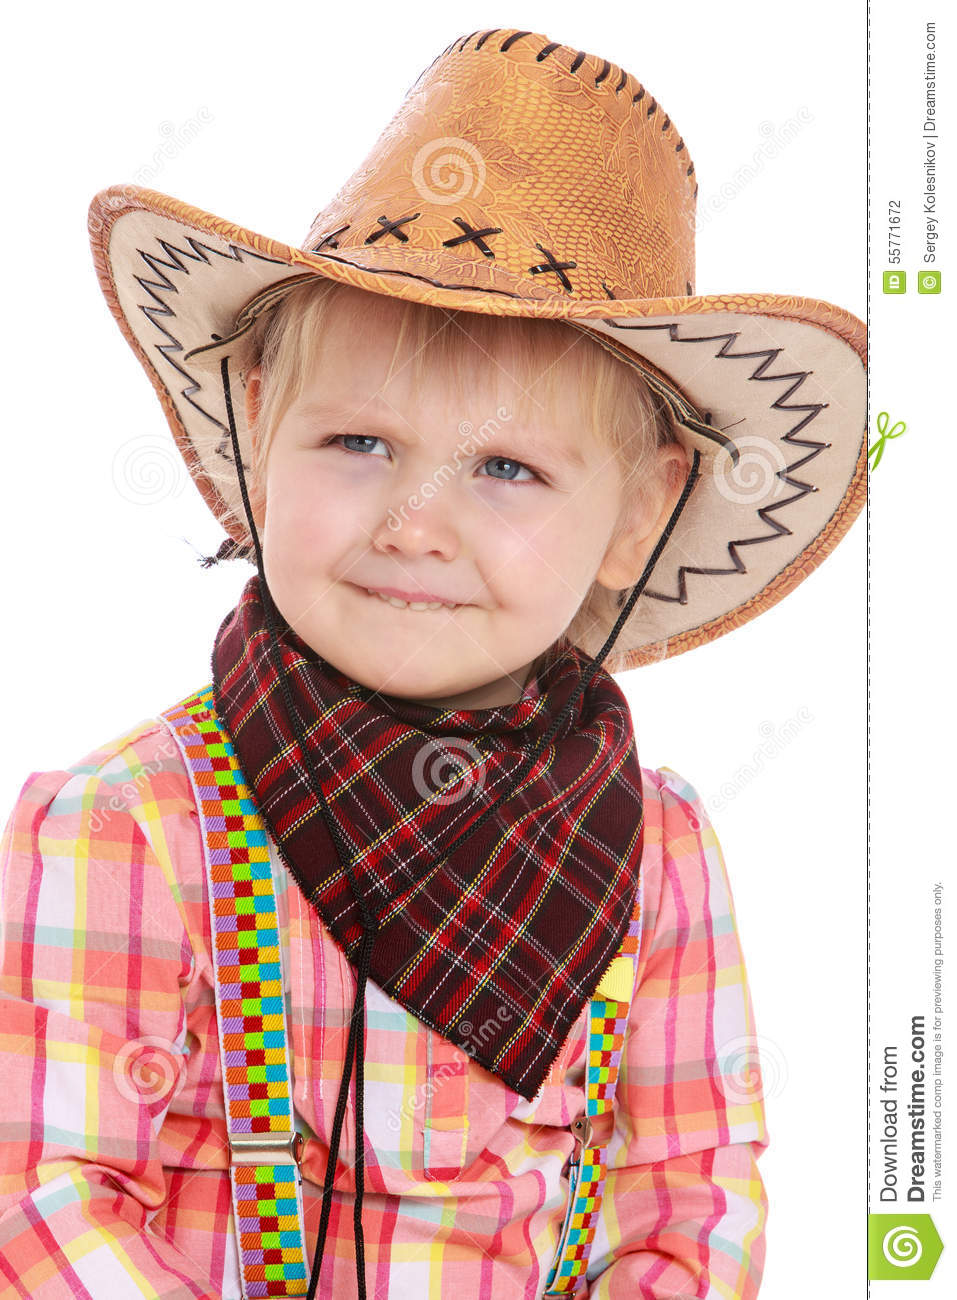 b102c6f0caac2 Smiling little girl in cowboy costume - isolated on white background